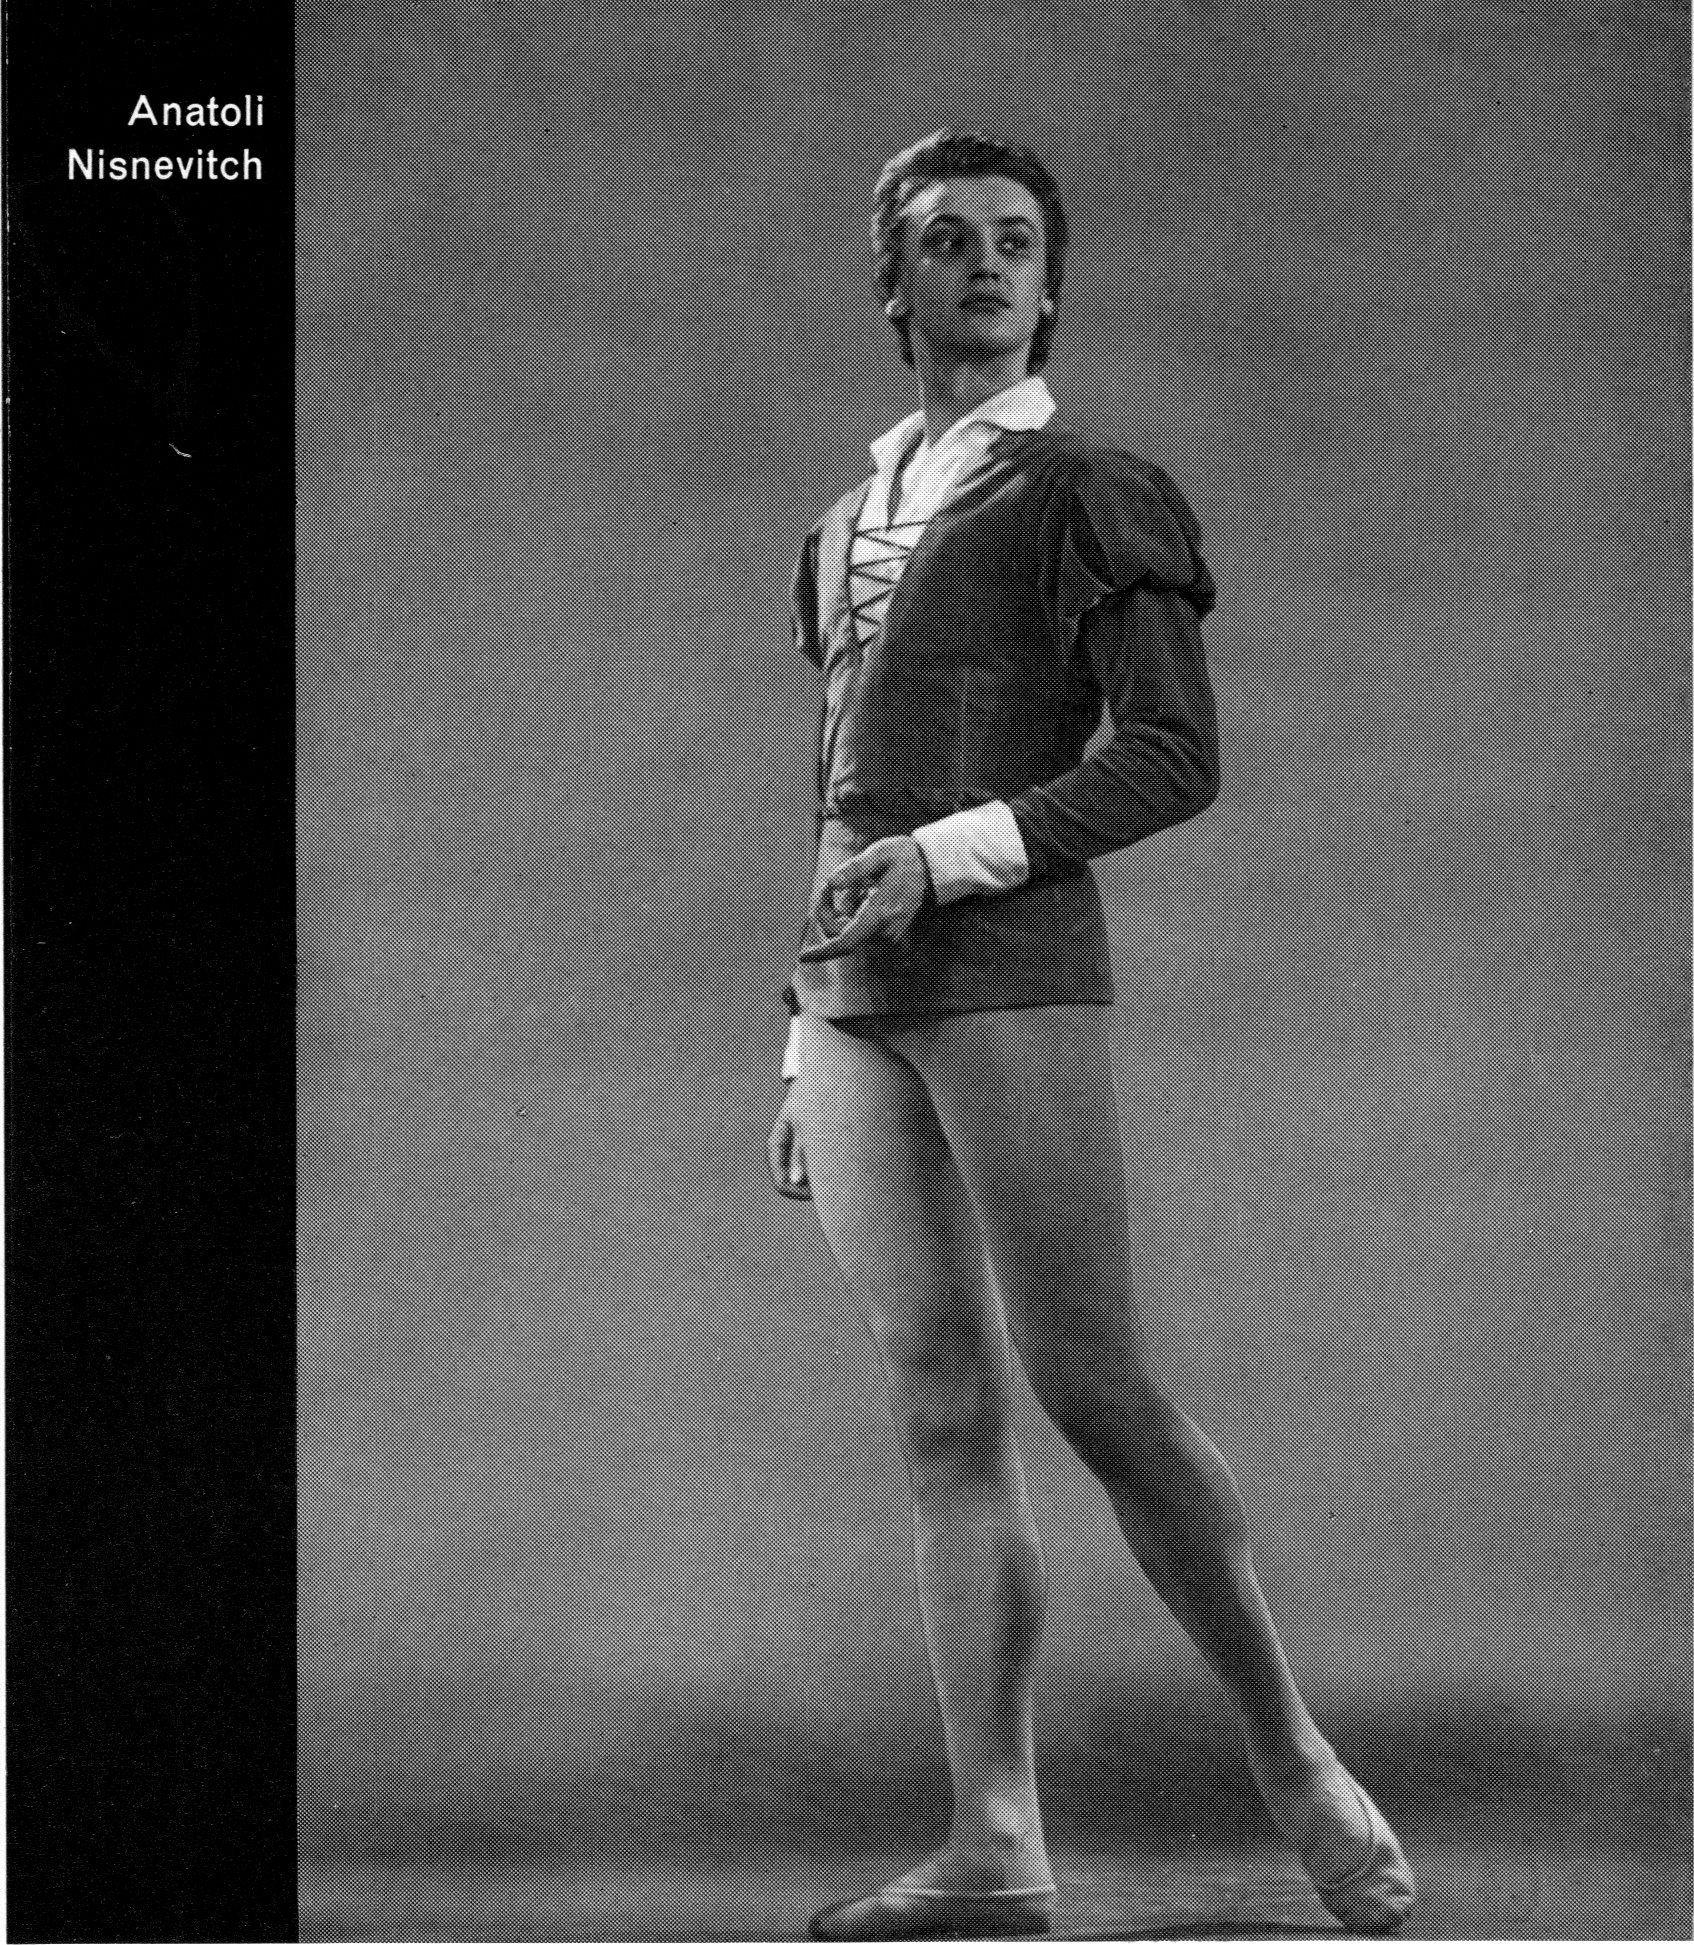 Honeymoon - Ballet - Giselle - Anatoli Nisnevitch